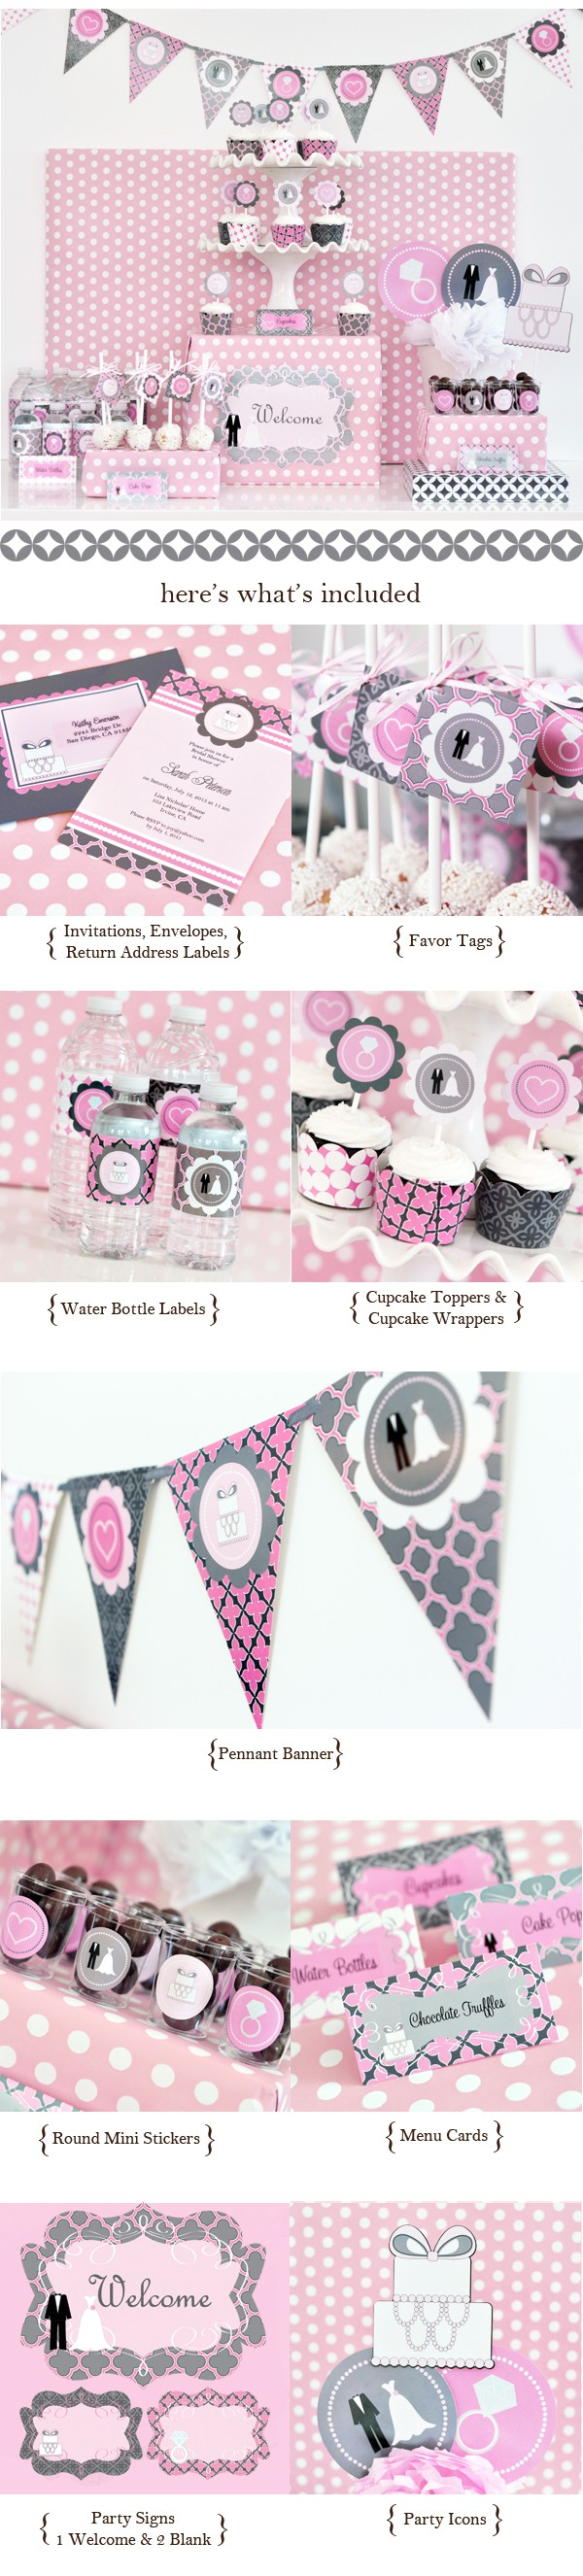 Wholesale Wedding Favors, Party Favors, by Event Blossom Wedding ...